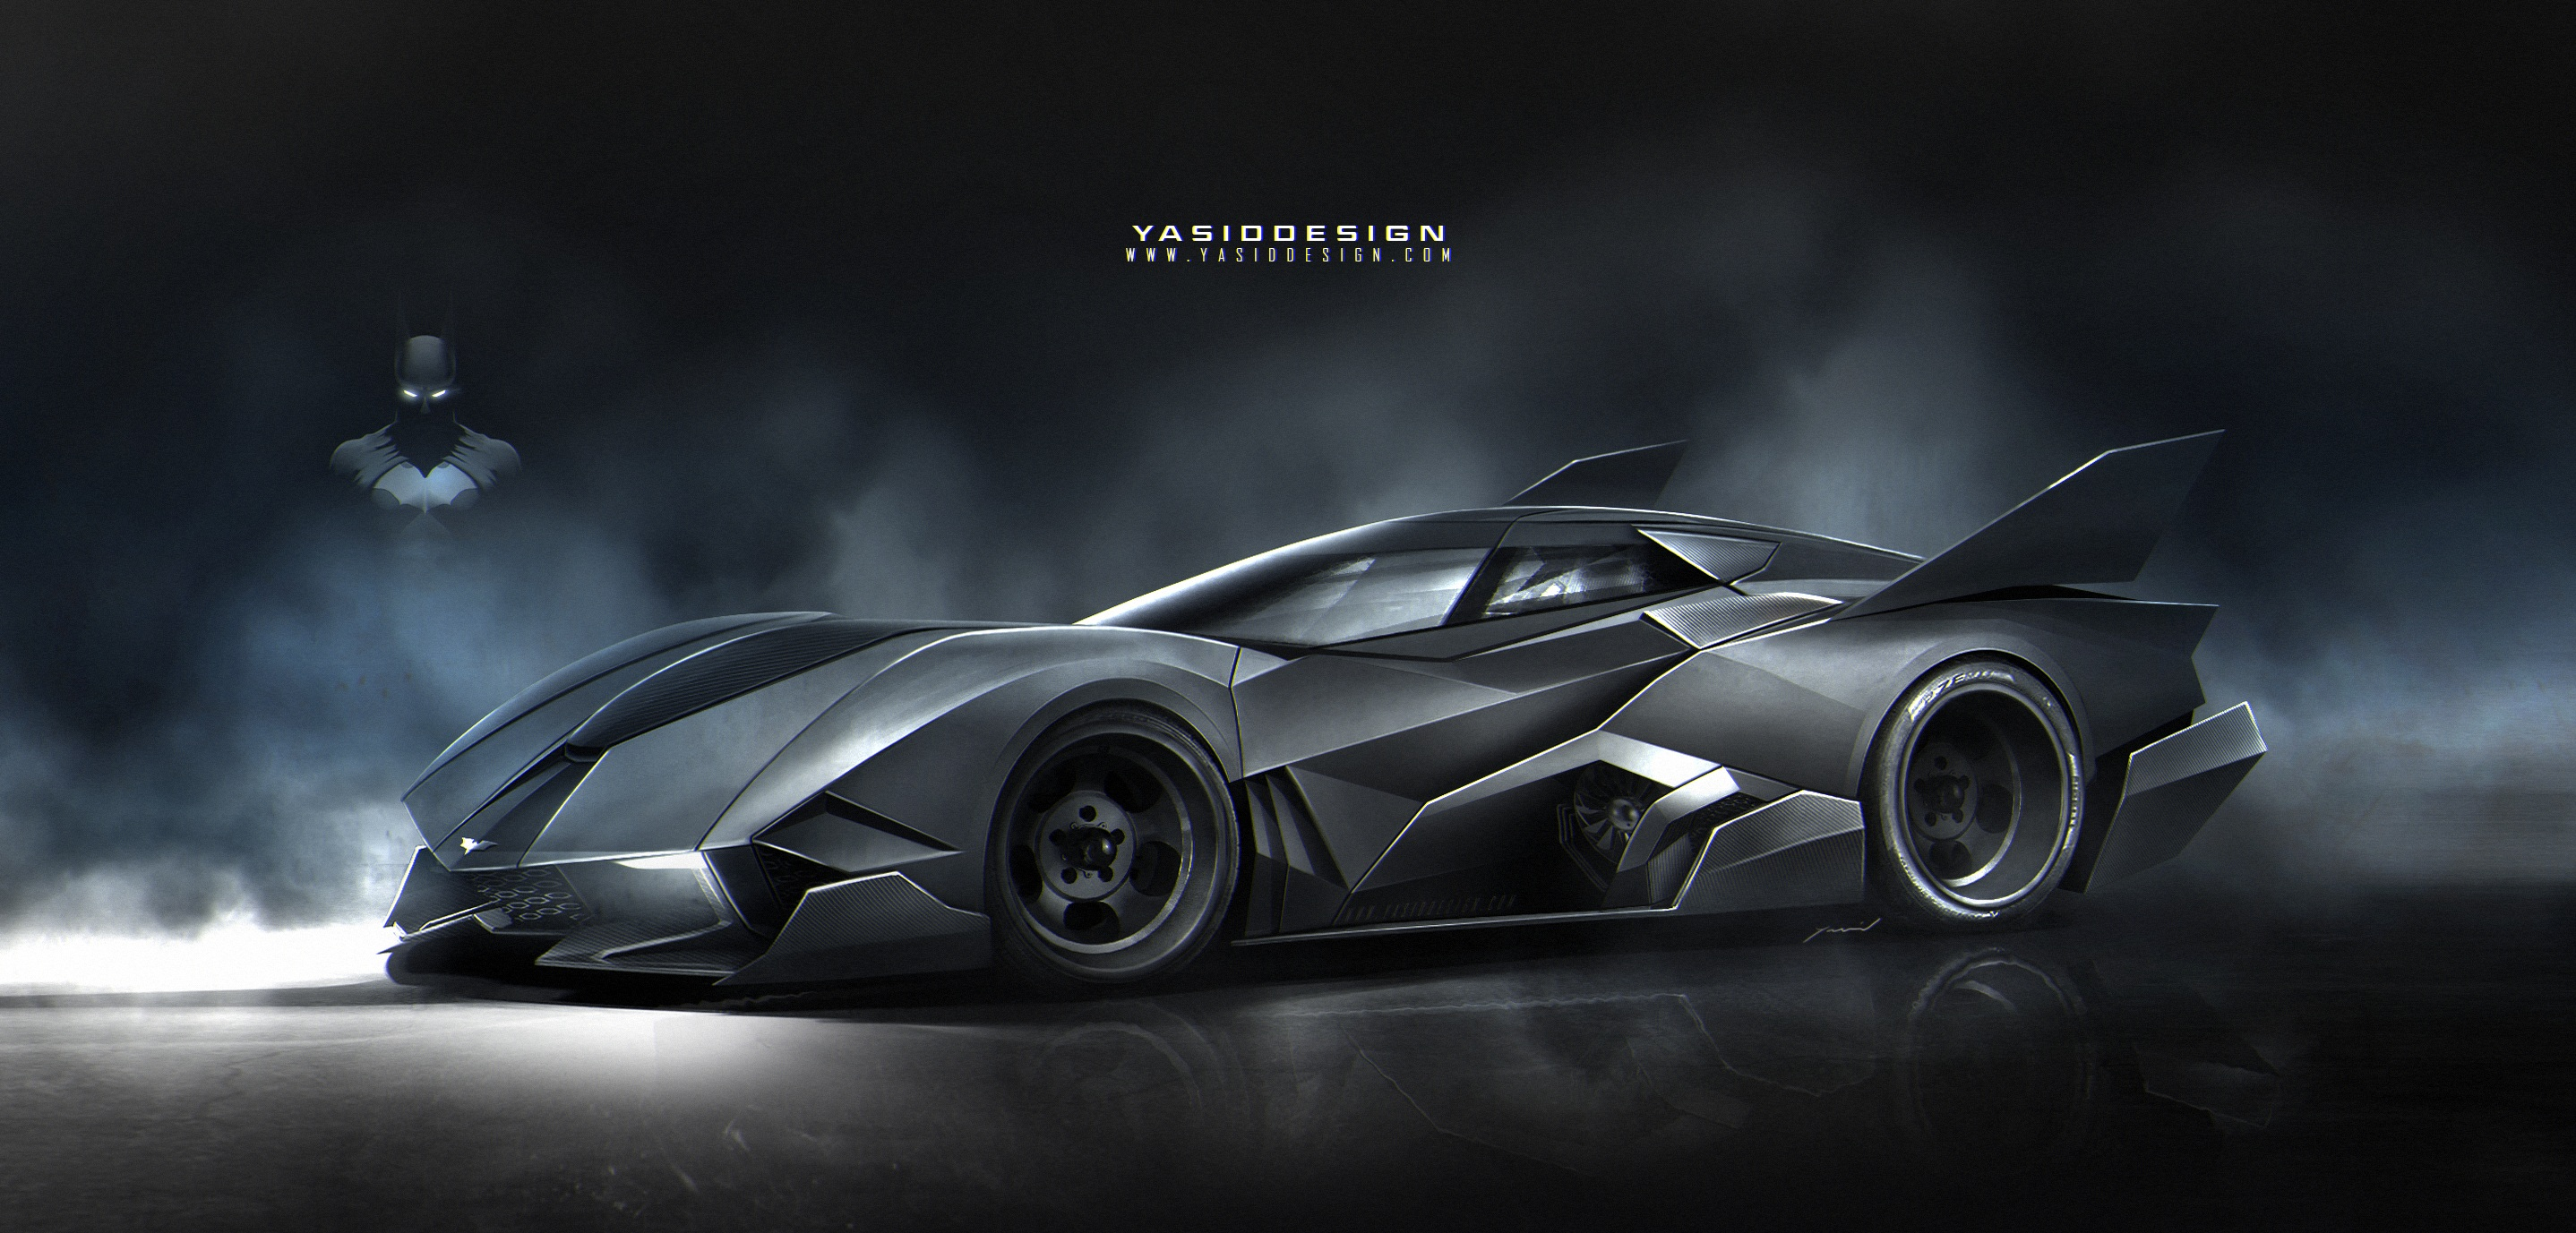 Batmobile 27 Desktop Background